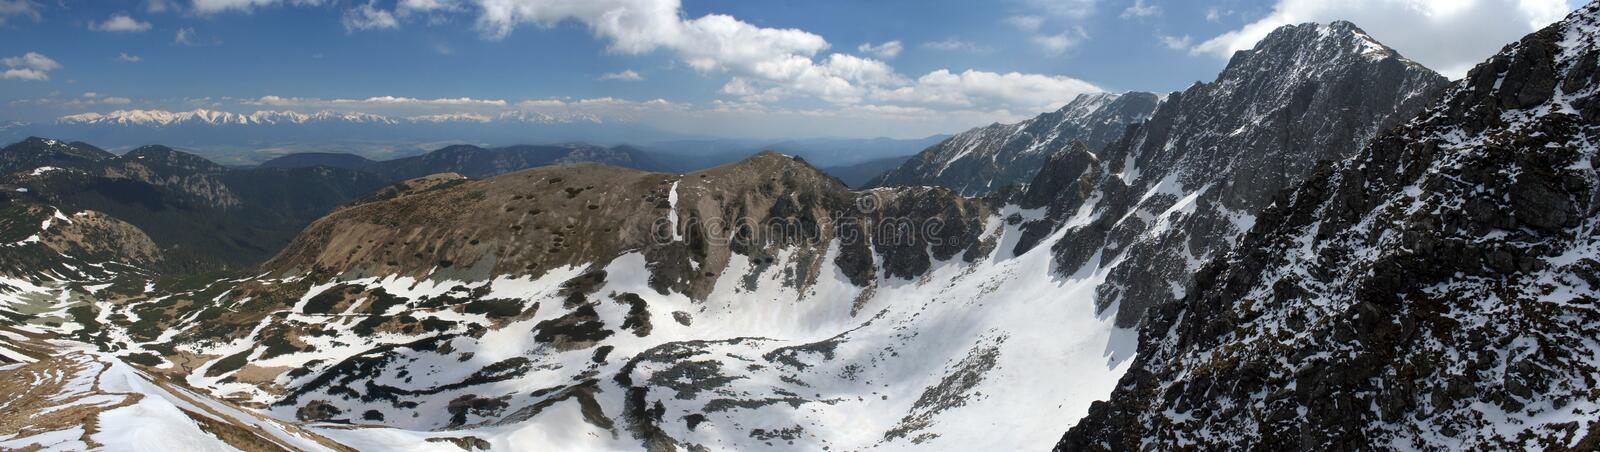 Download Mountains panorama stock image. Image of cold, cool, december - 1722839